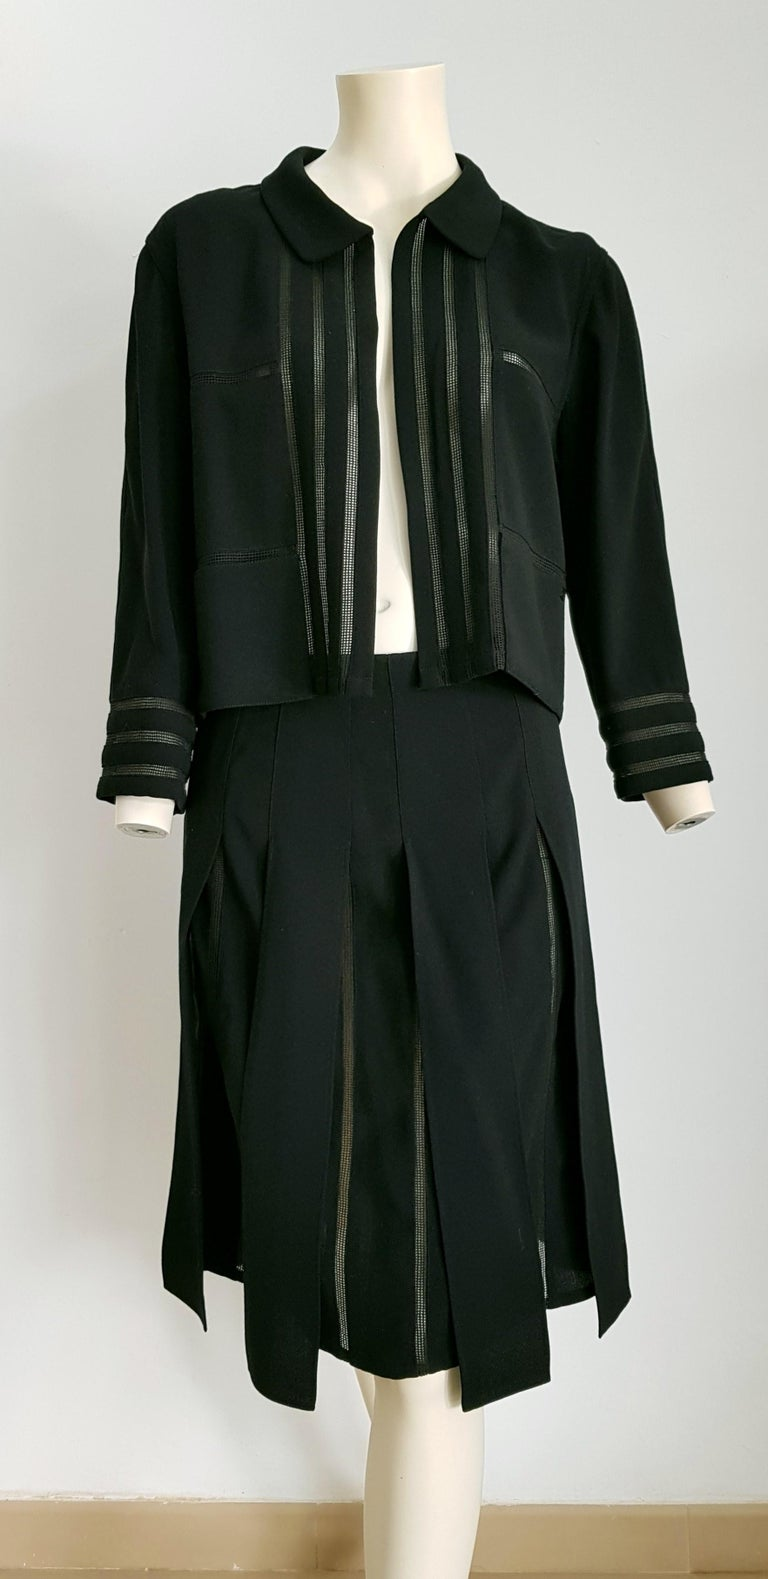 CHANEL black with transparent stripes wool skirt suit - Unworn, New. .. SIZE: equivalent to about Small / Medium, please review approx measurements as follows in cm.  JACKET: lenght 54, chest underarm to underarm 55, bust circumference 84, shoulder